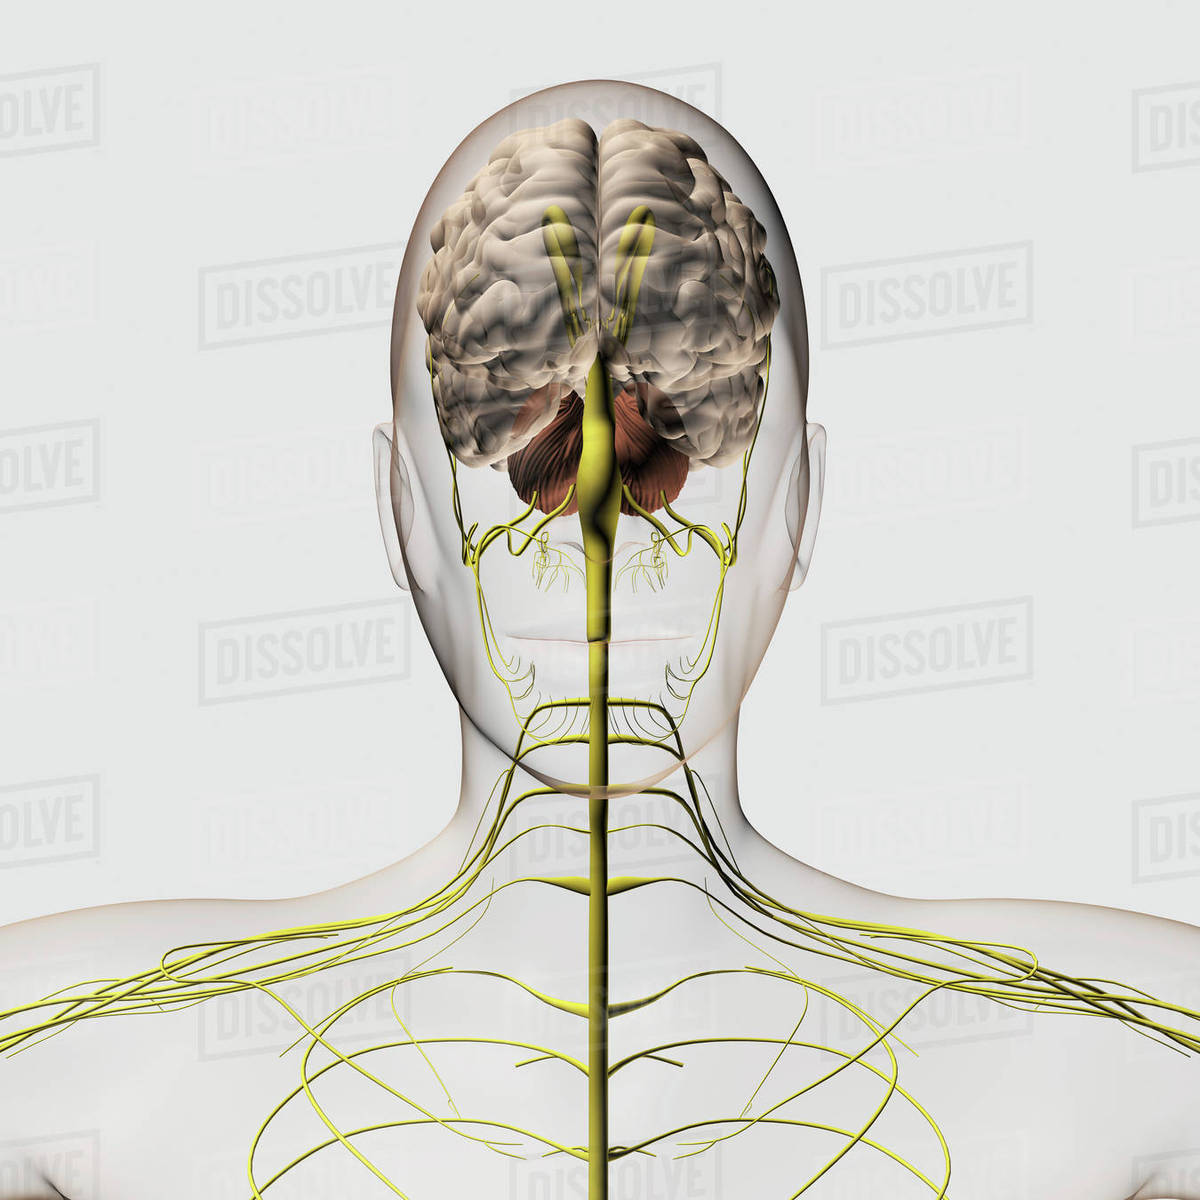 Medical Illustration Of The Human Nervous System And Brain Stock